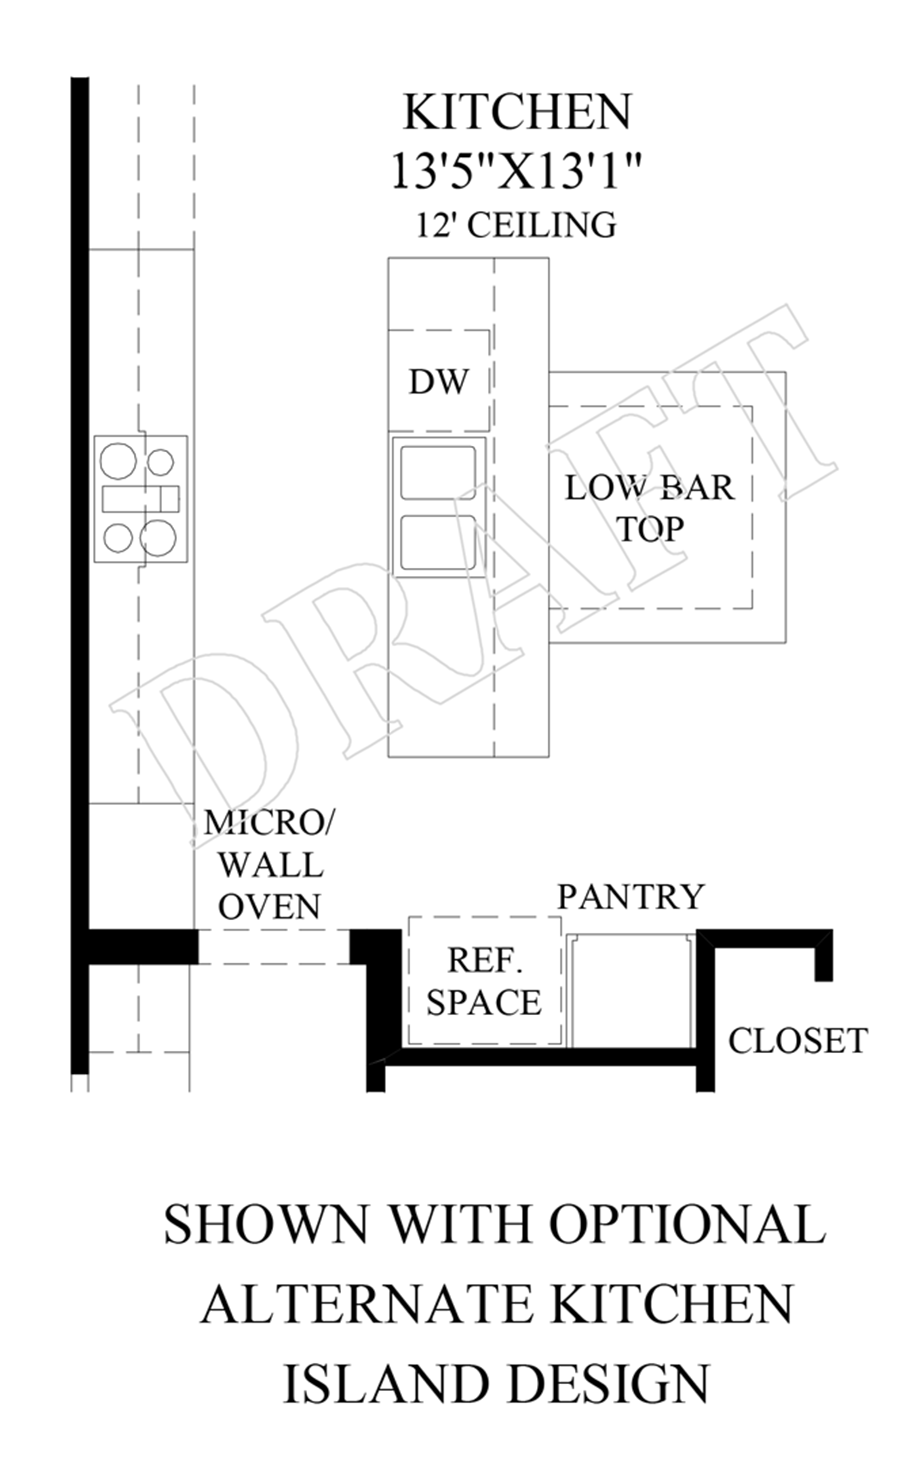 Optional Alternate Kitchen Island Design Floor Plan